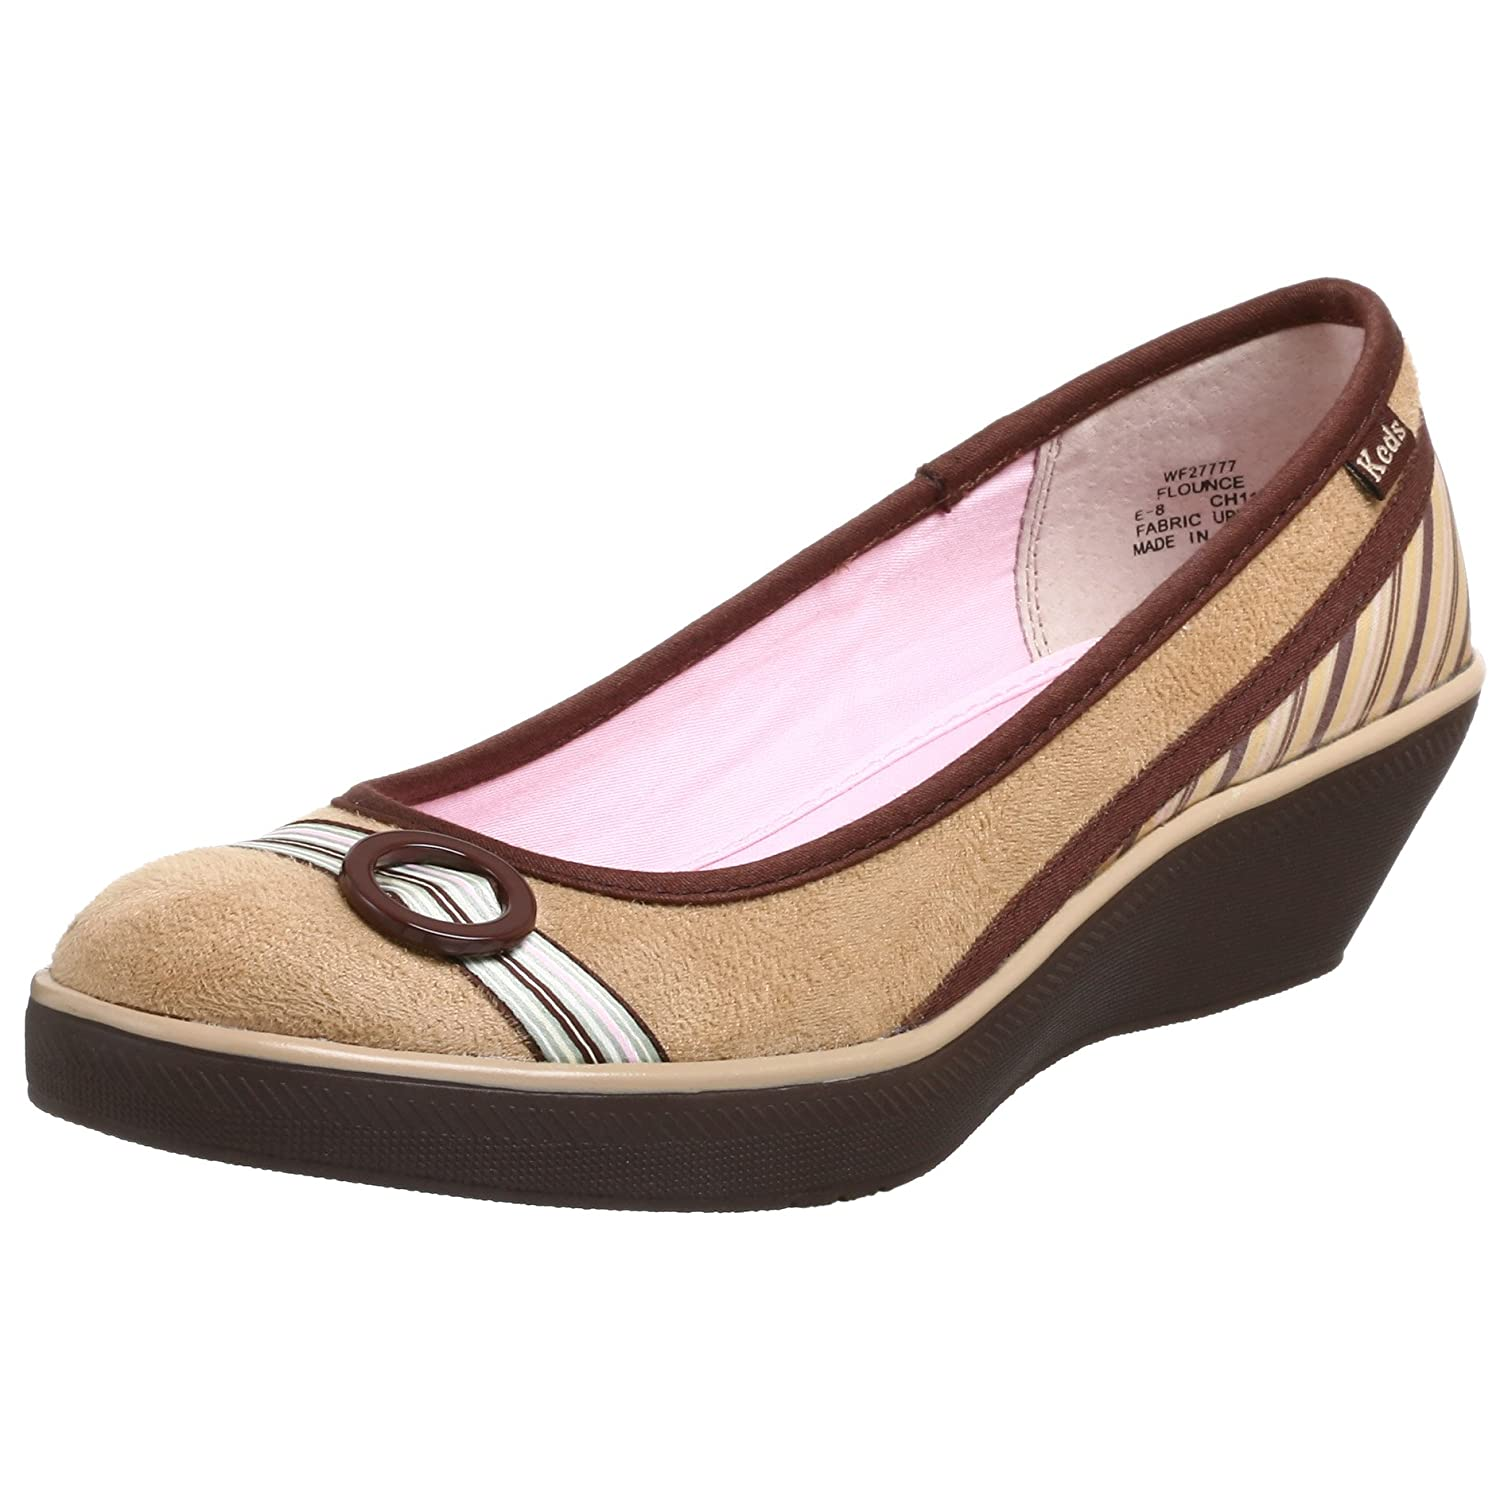 Keds Women's Flounce Wedge - Free Overnight Shipping & Return Shipping: Endless.com from endless.com